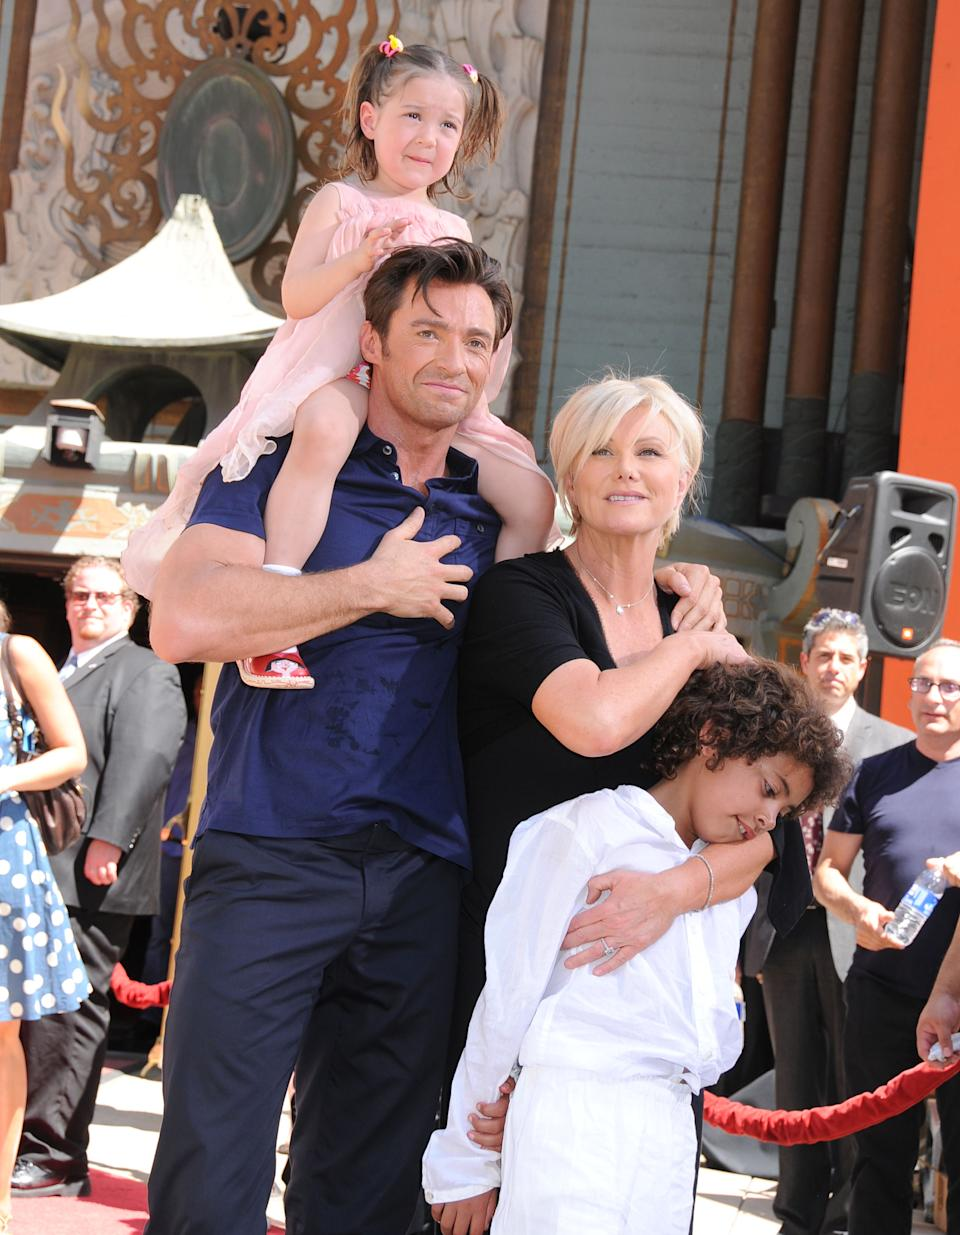 HOLLYWOOD - APRIL 21:  Actor Hugh Jackman, wife Deborra-Lee Furness and their children Ava Jackman and Oscar Jackman attend the handprint and footprint ceremony honoring Hugh Jackman at Grauman's Chinese Theatre on April 21, 2009 in Hollywood, California.  (Photo by Barry King/FilmMagic)